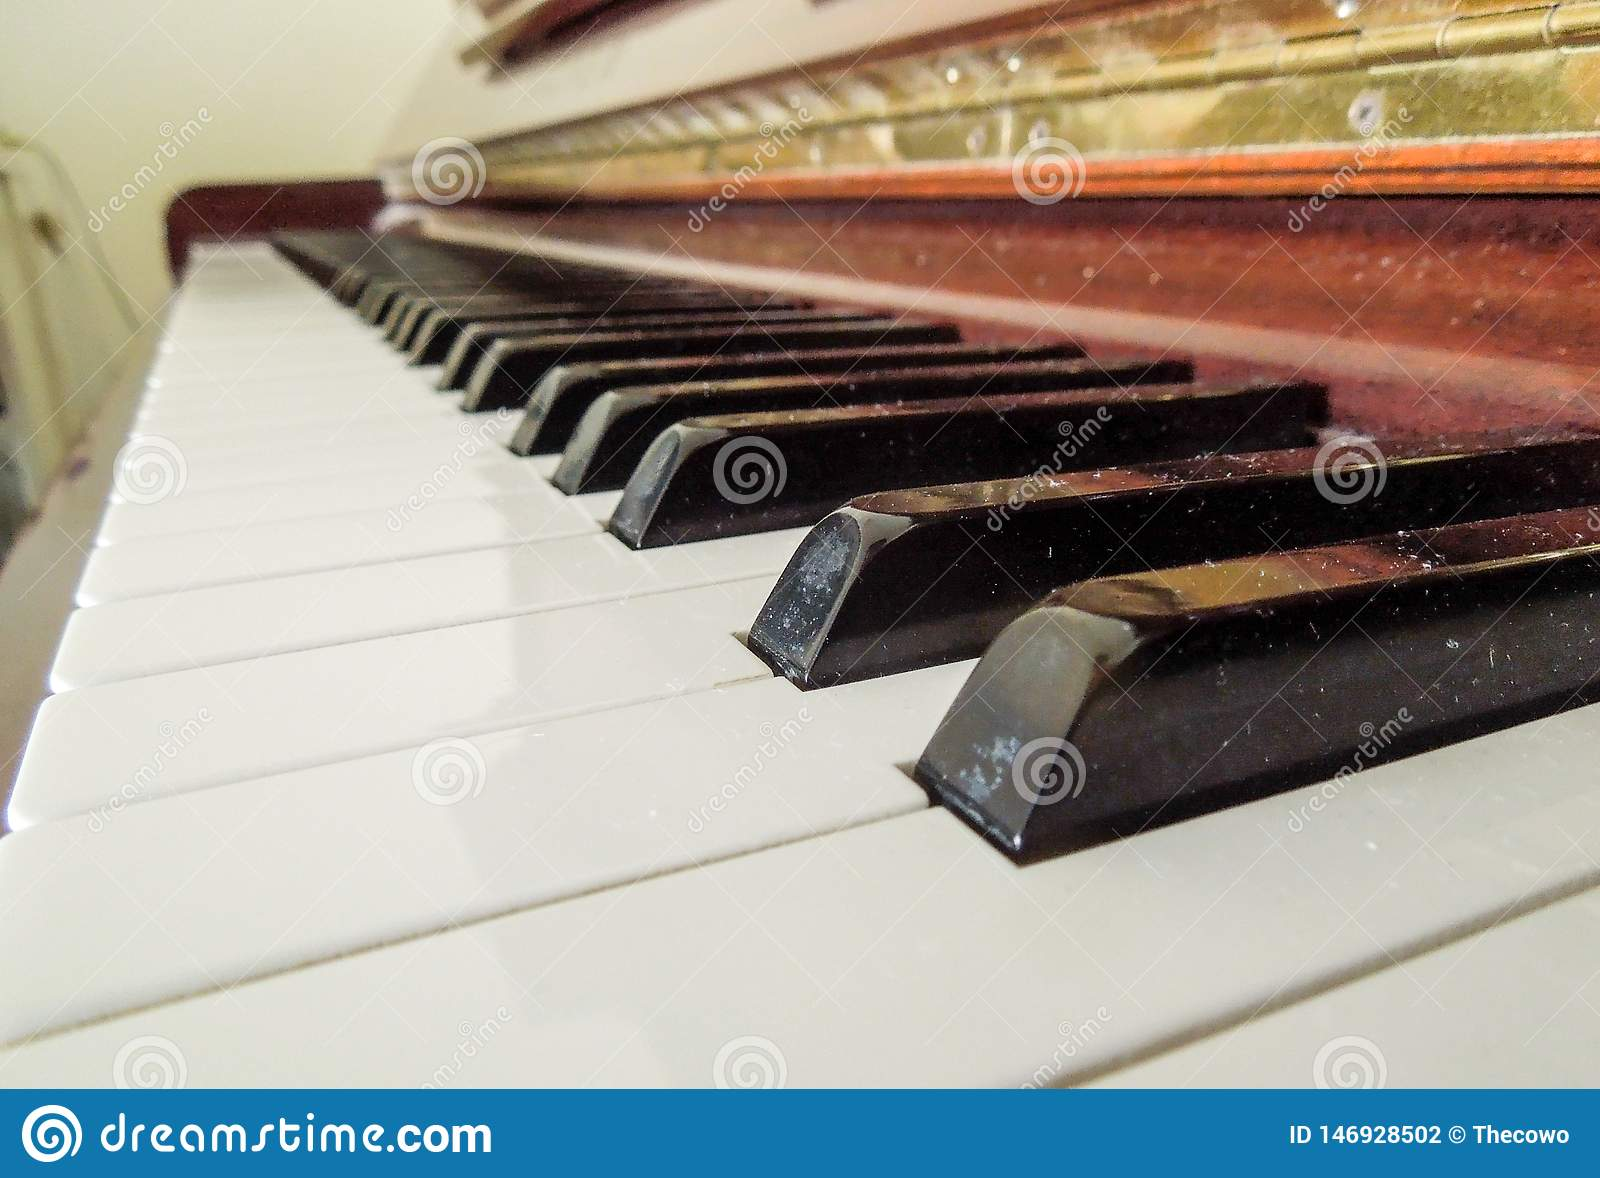 Closup of a wooden piano with two black keys in focus